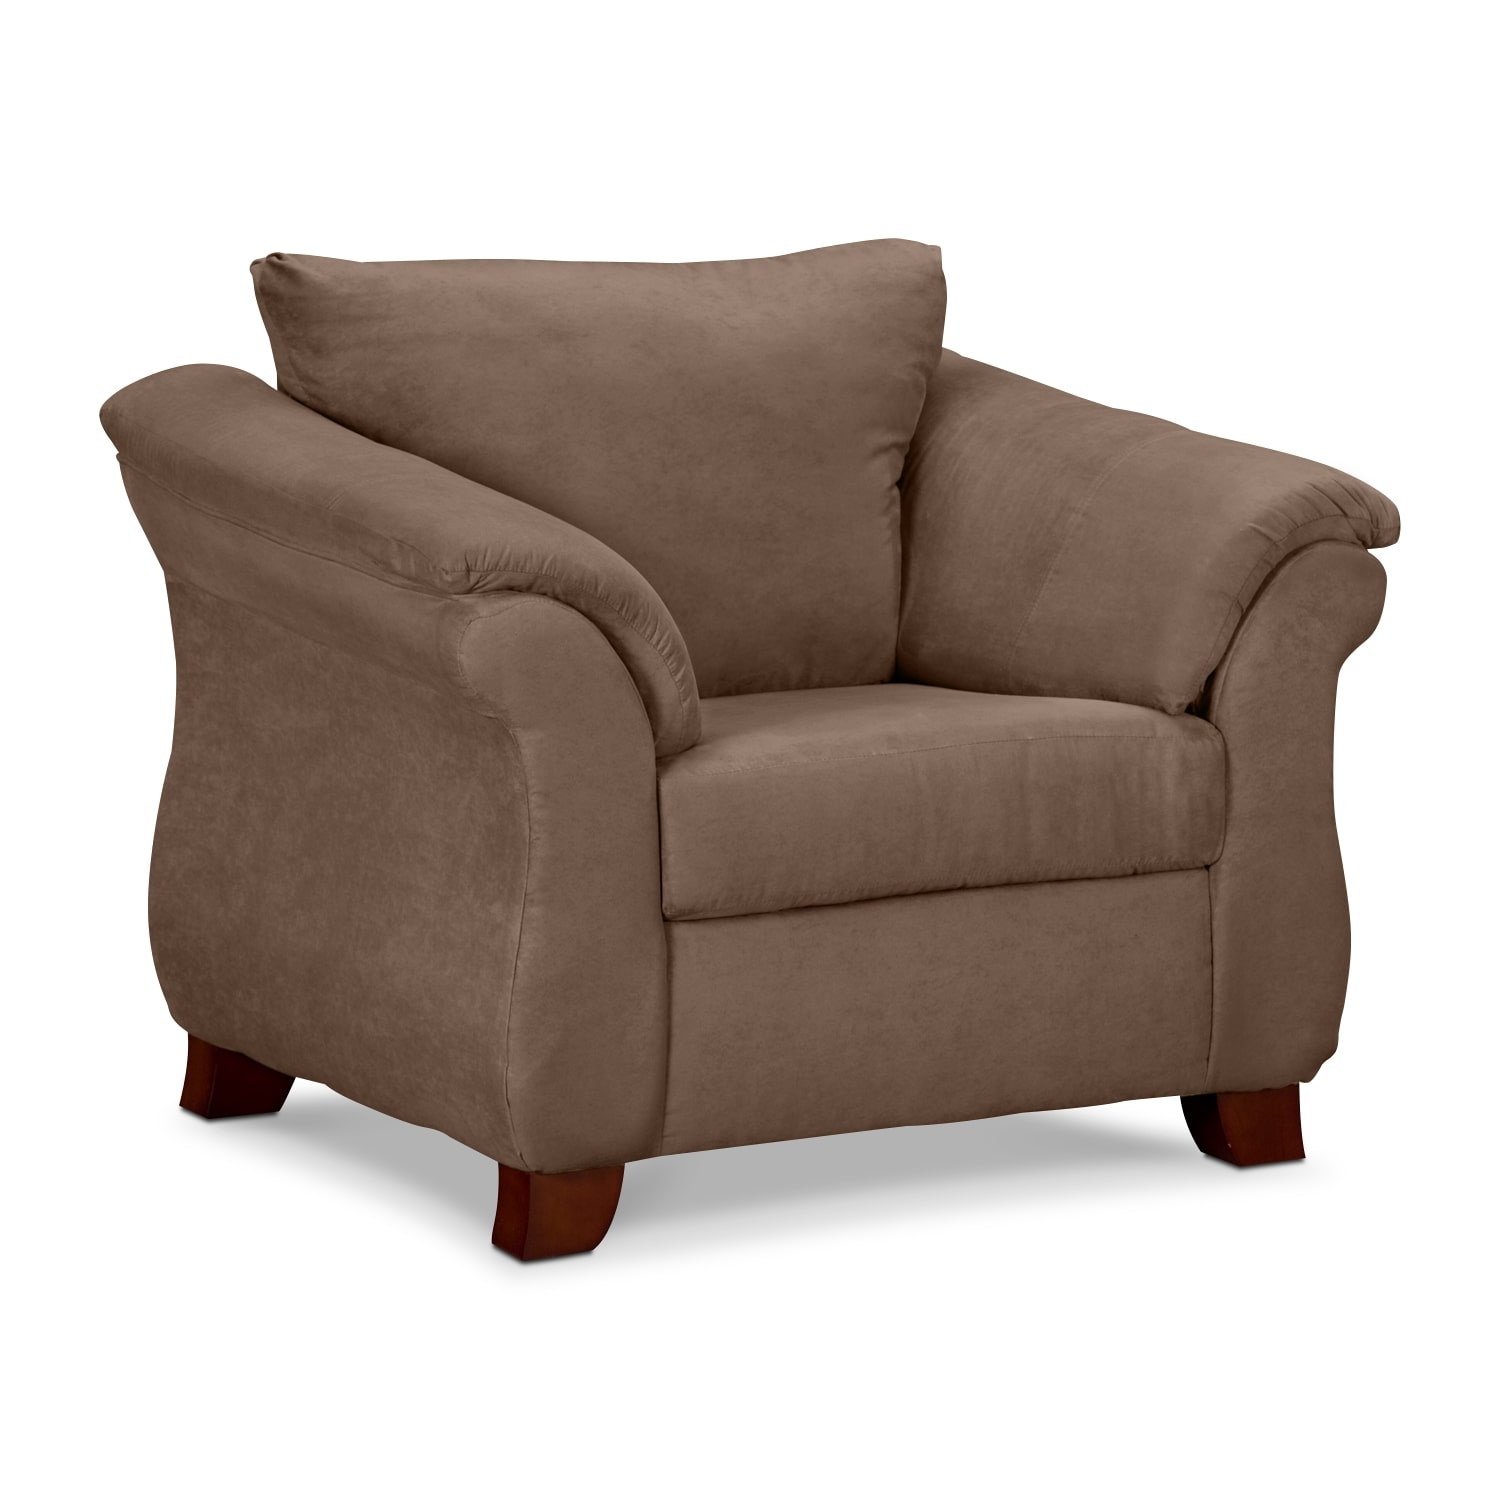 Adrian Chair   Taupe